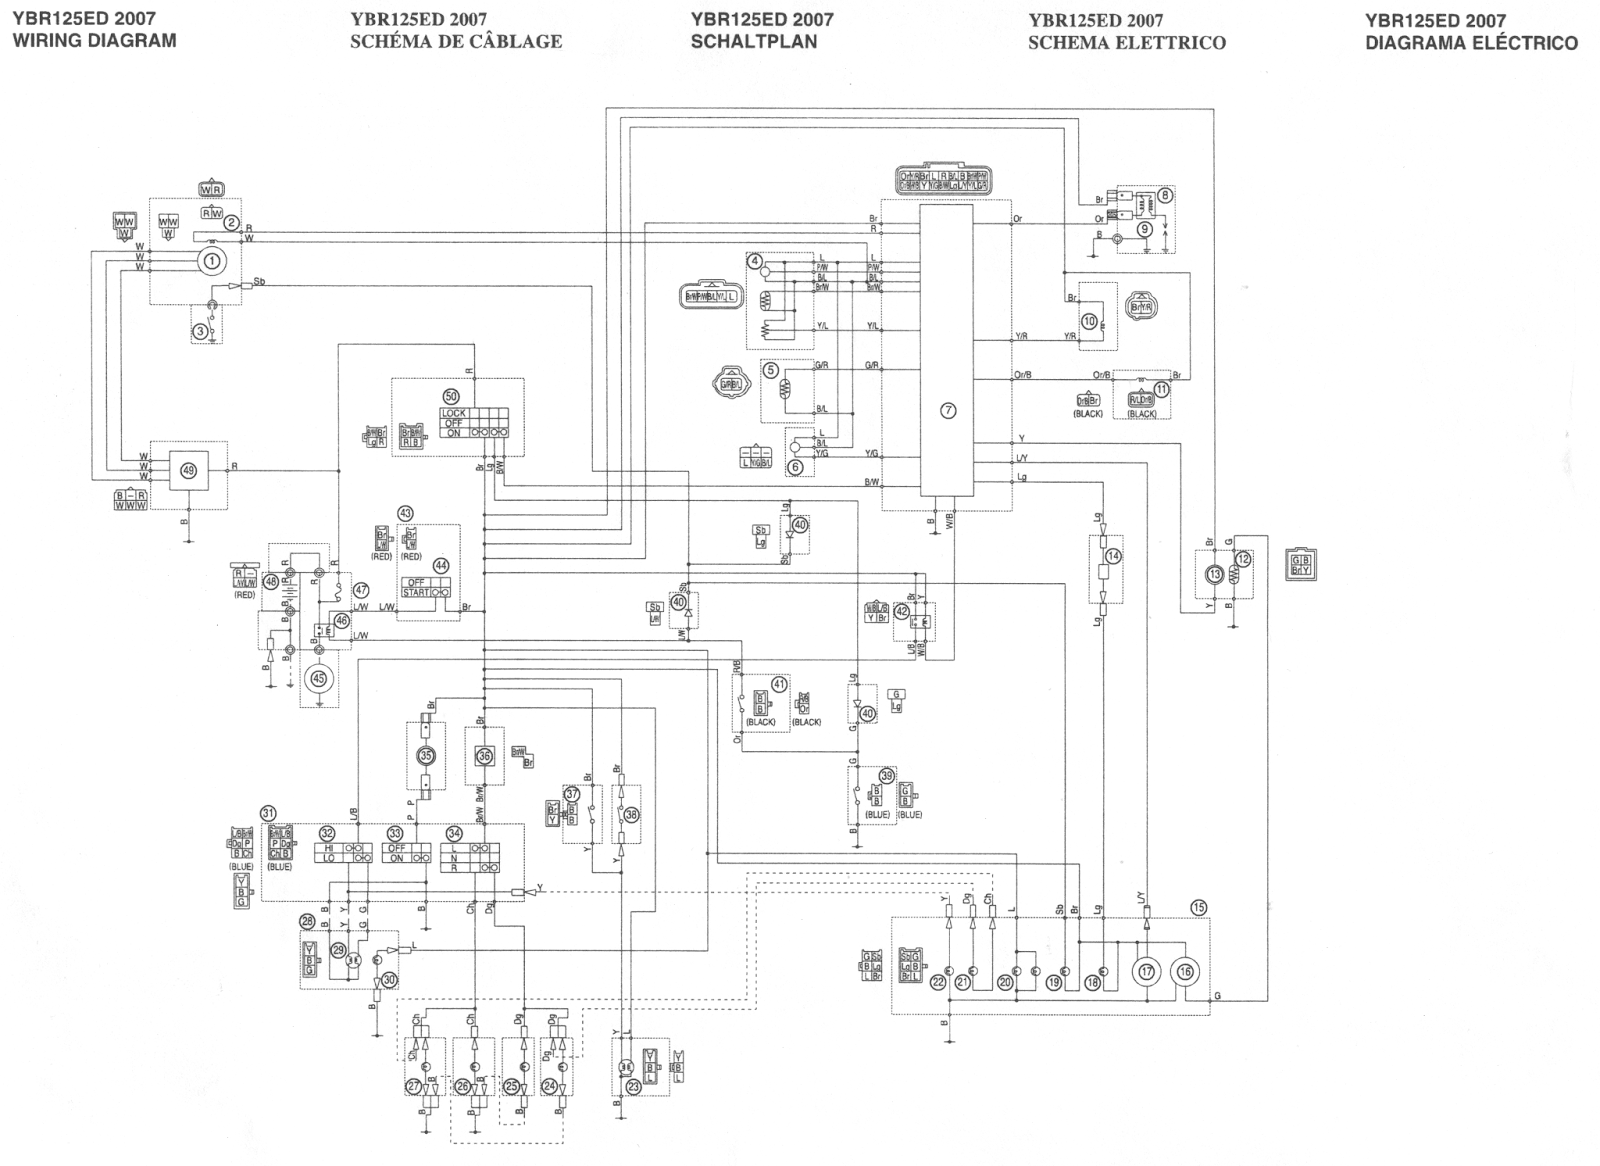 Yamaha Ybr 125 Electrical System Wiring also Voltage Multipler besides Engine Managementgeneral besides Security System Using Smart Card Technology additionally Voltage Regulator Int How It Works. on wiring diagram of voltage regulator